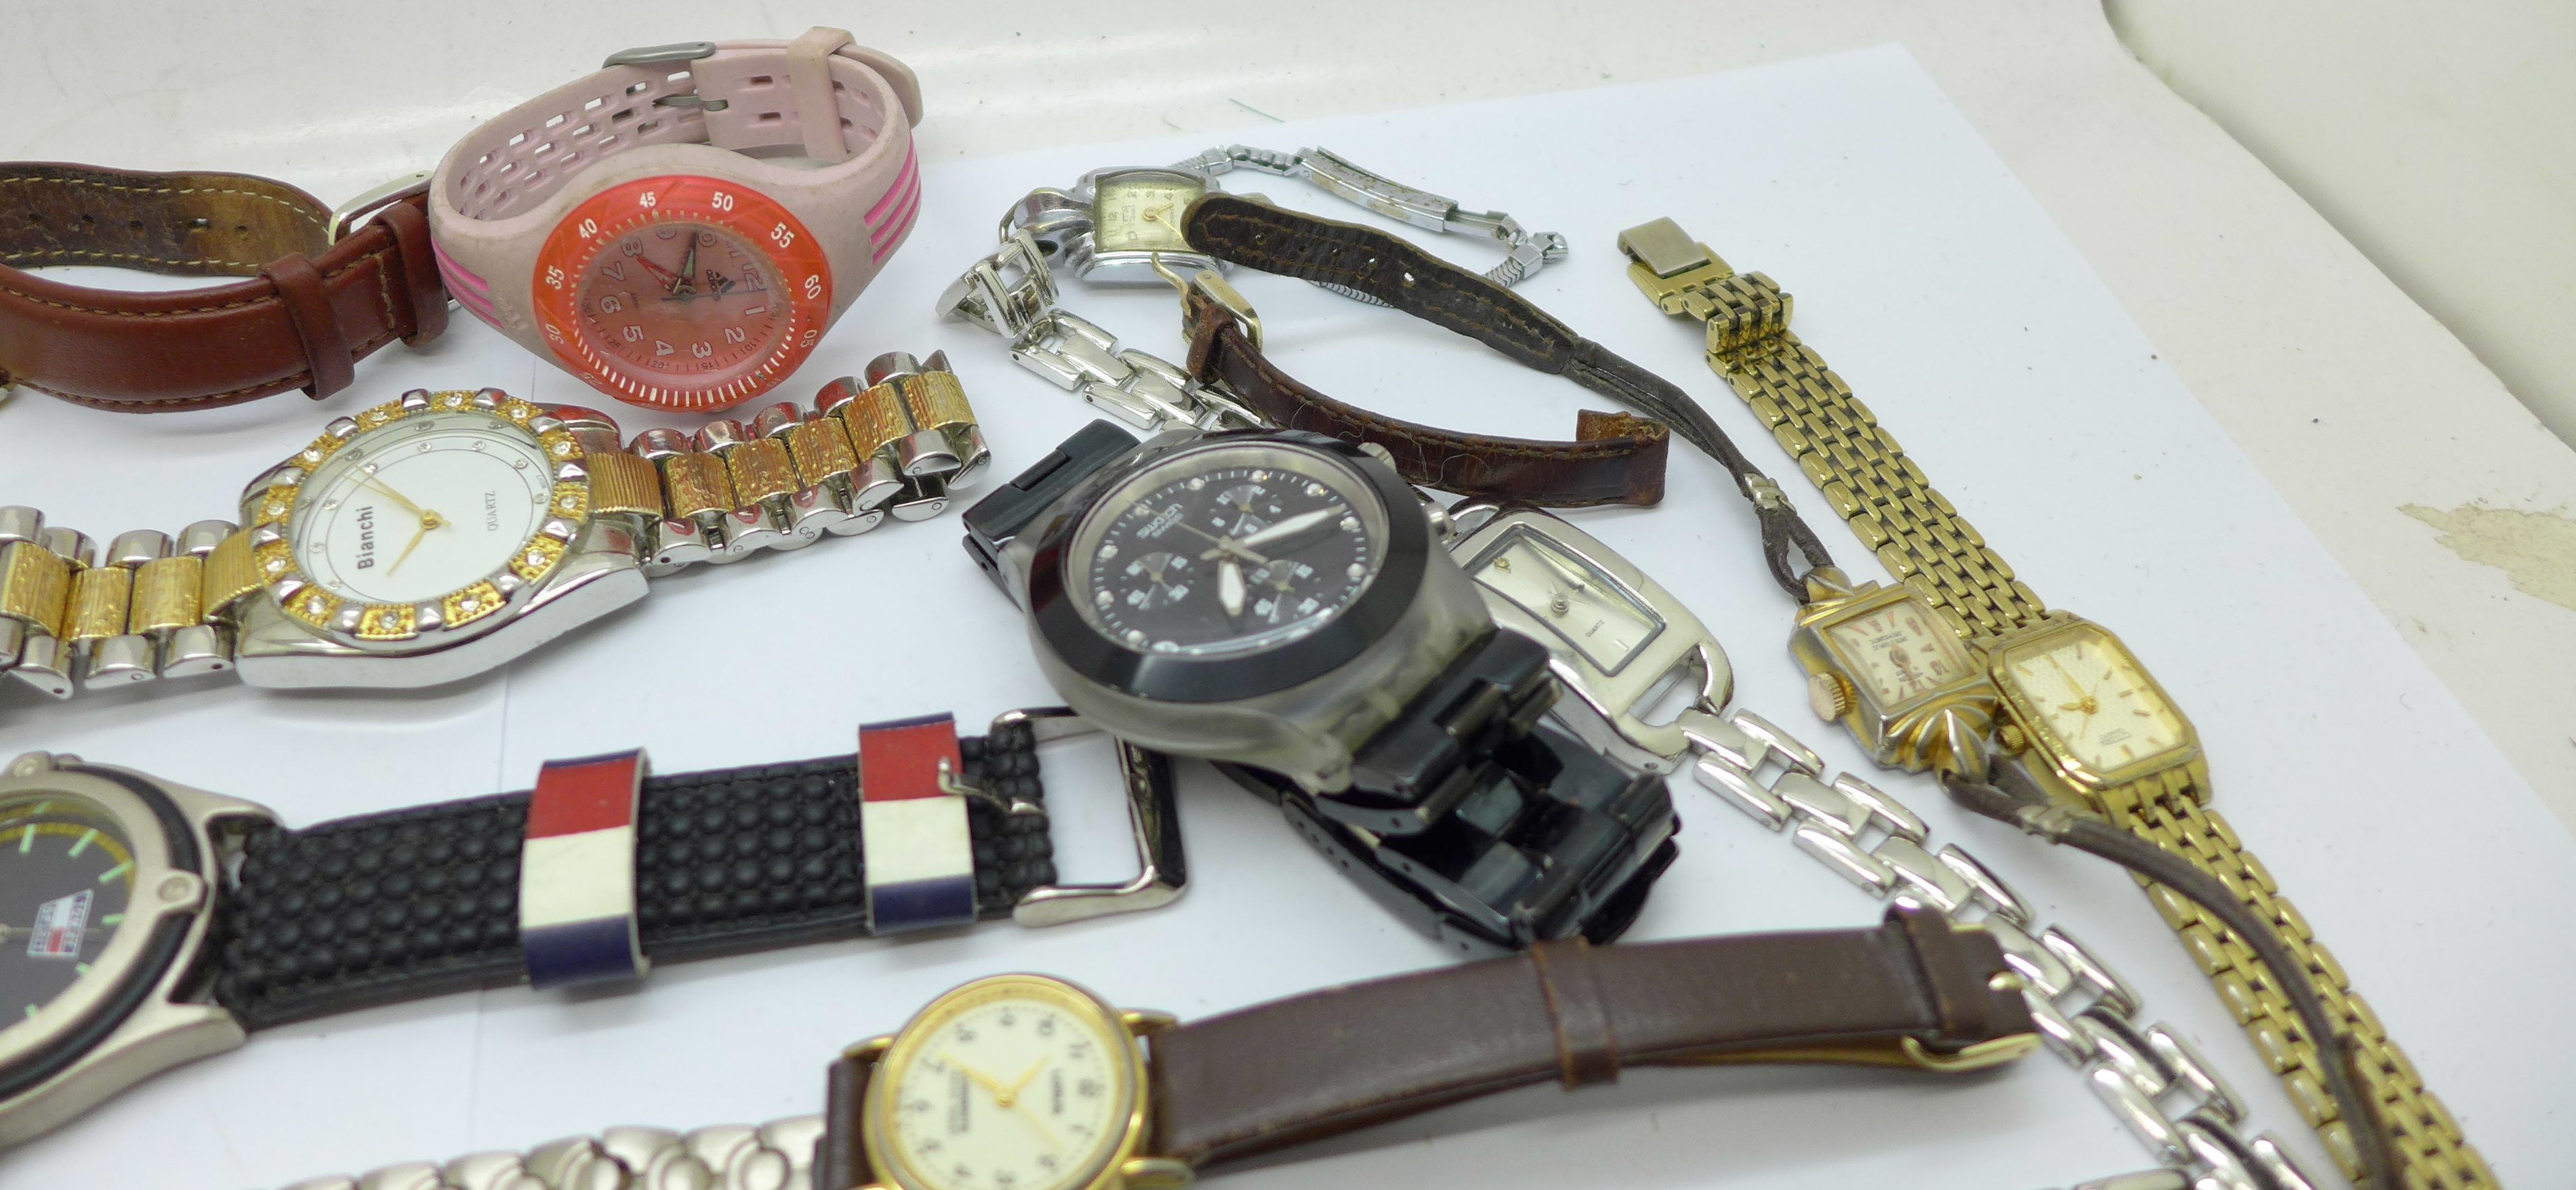 Wristwatches, pocket watches, etc., including Swatch and Seiko - Image 4 of 5